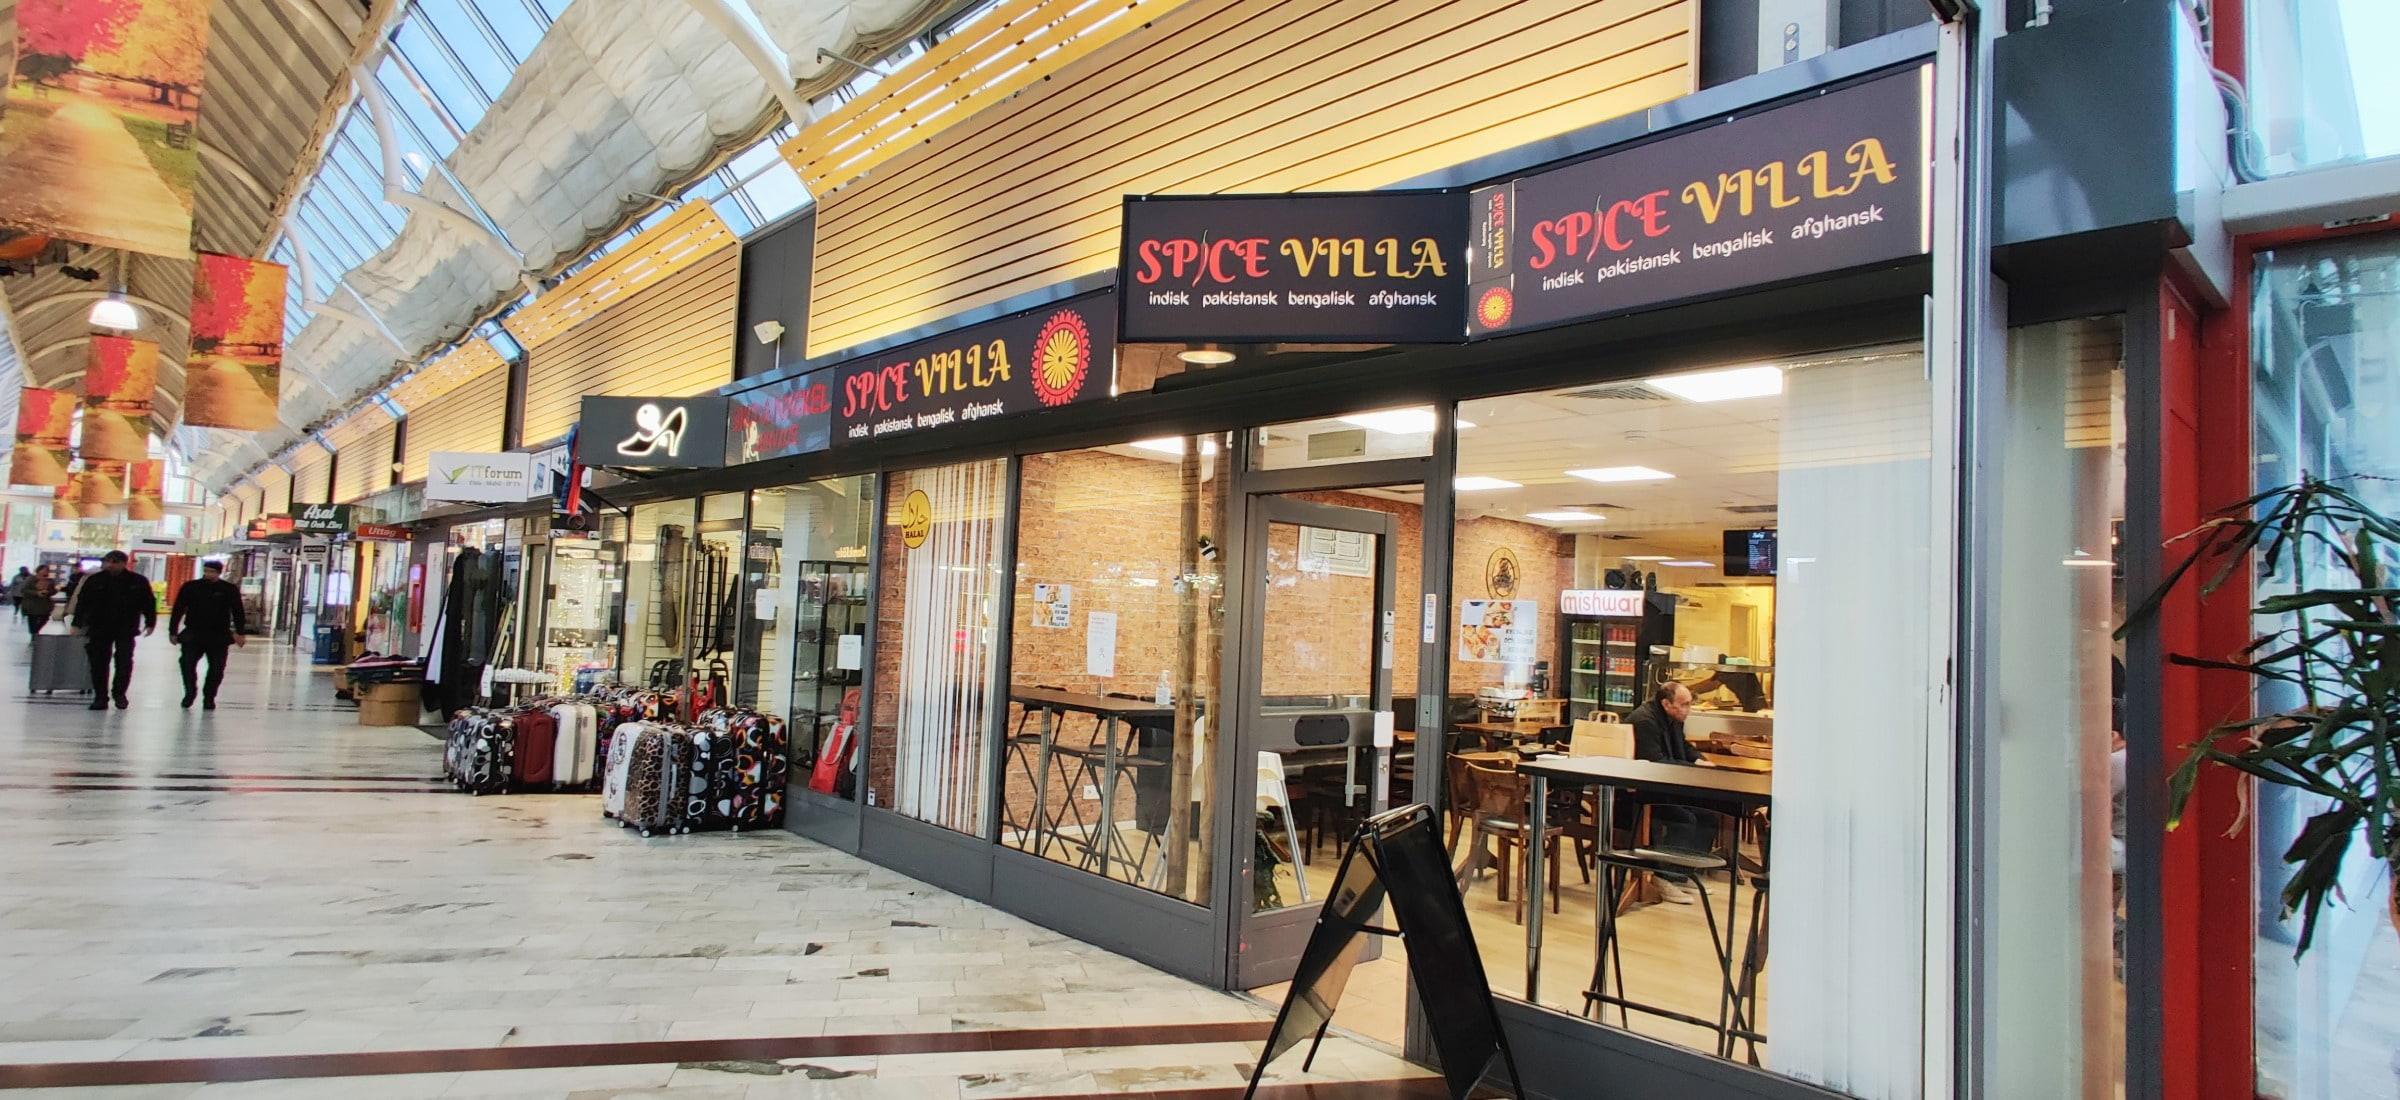 Spice villa Tensta Centrum – Photo from Spice Villa by Shahzad A.